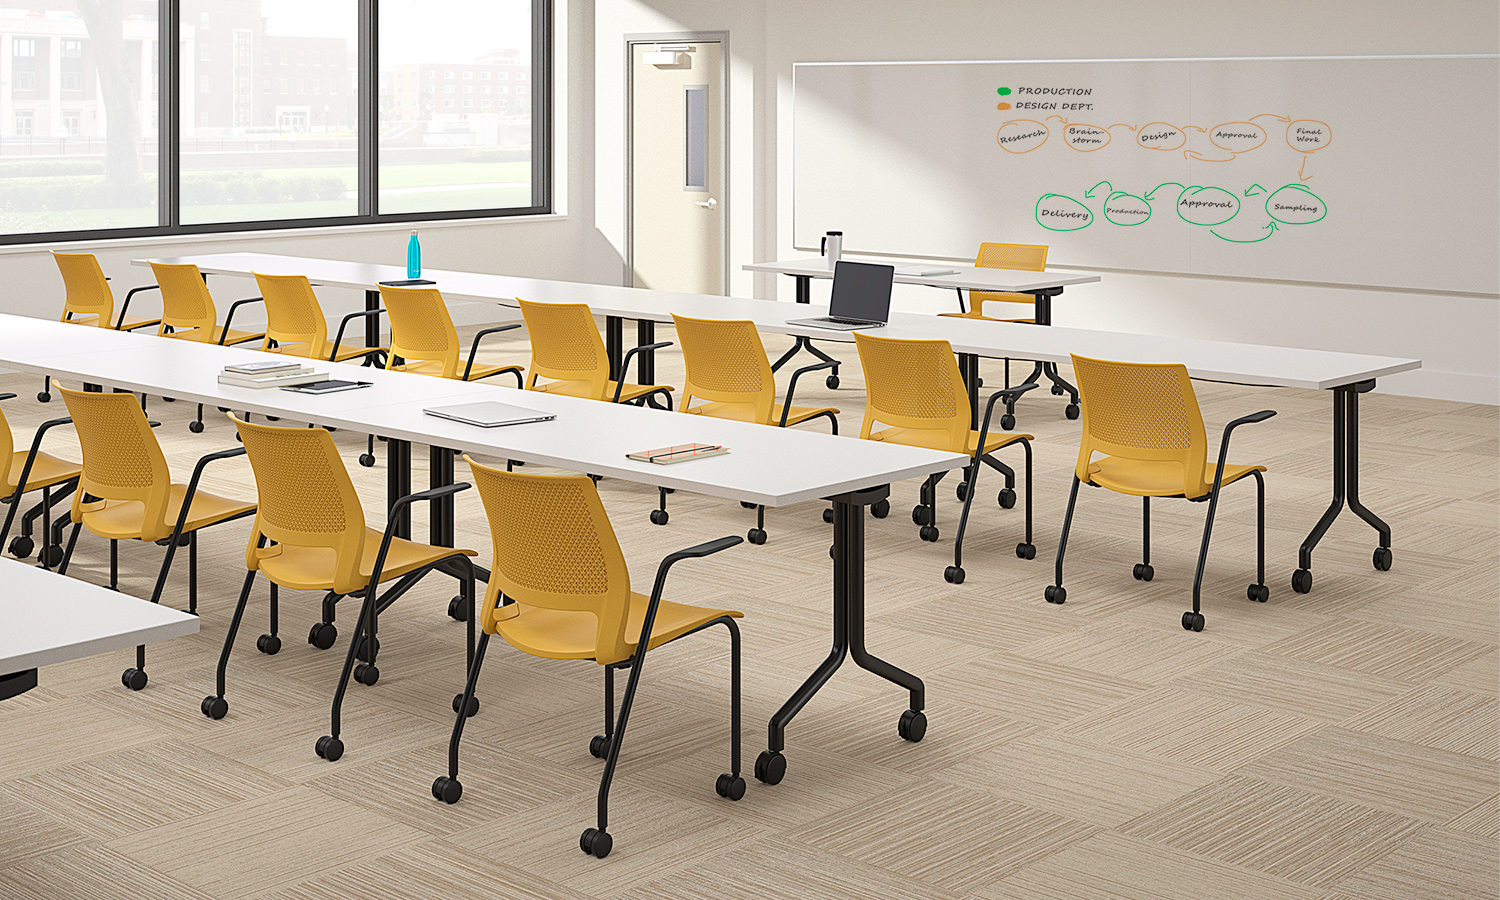 lumin honeycomb shell black frame arms casters classroom environment